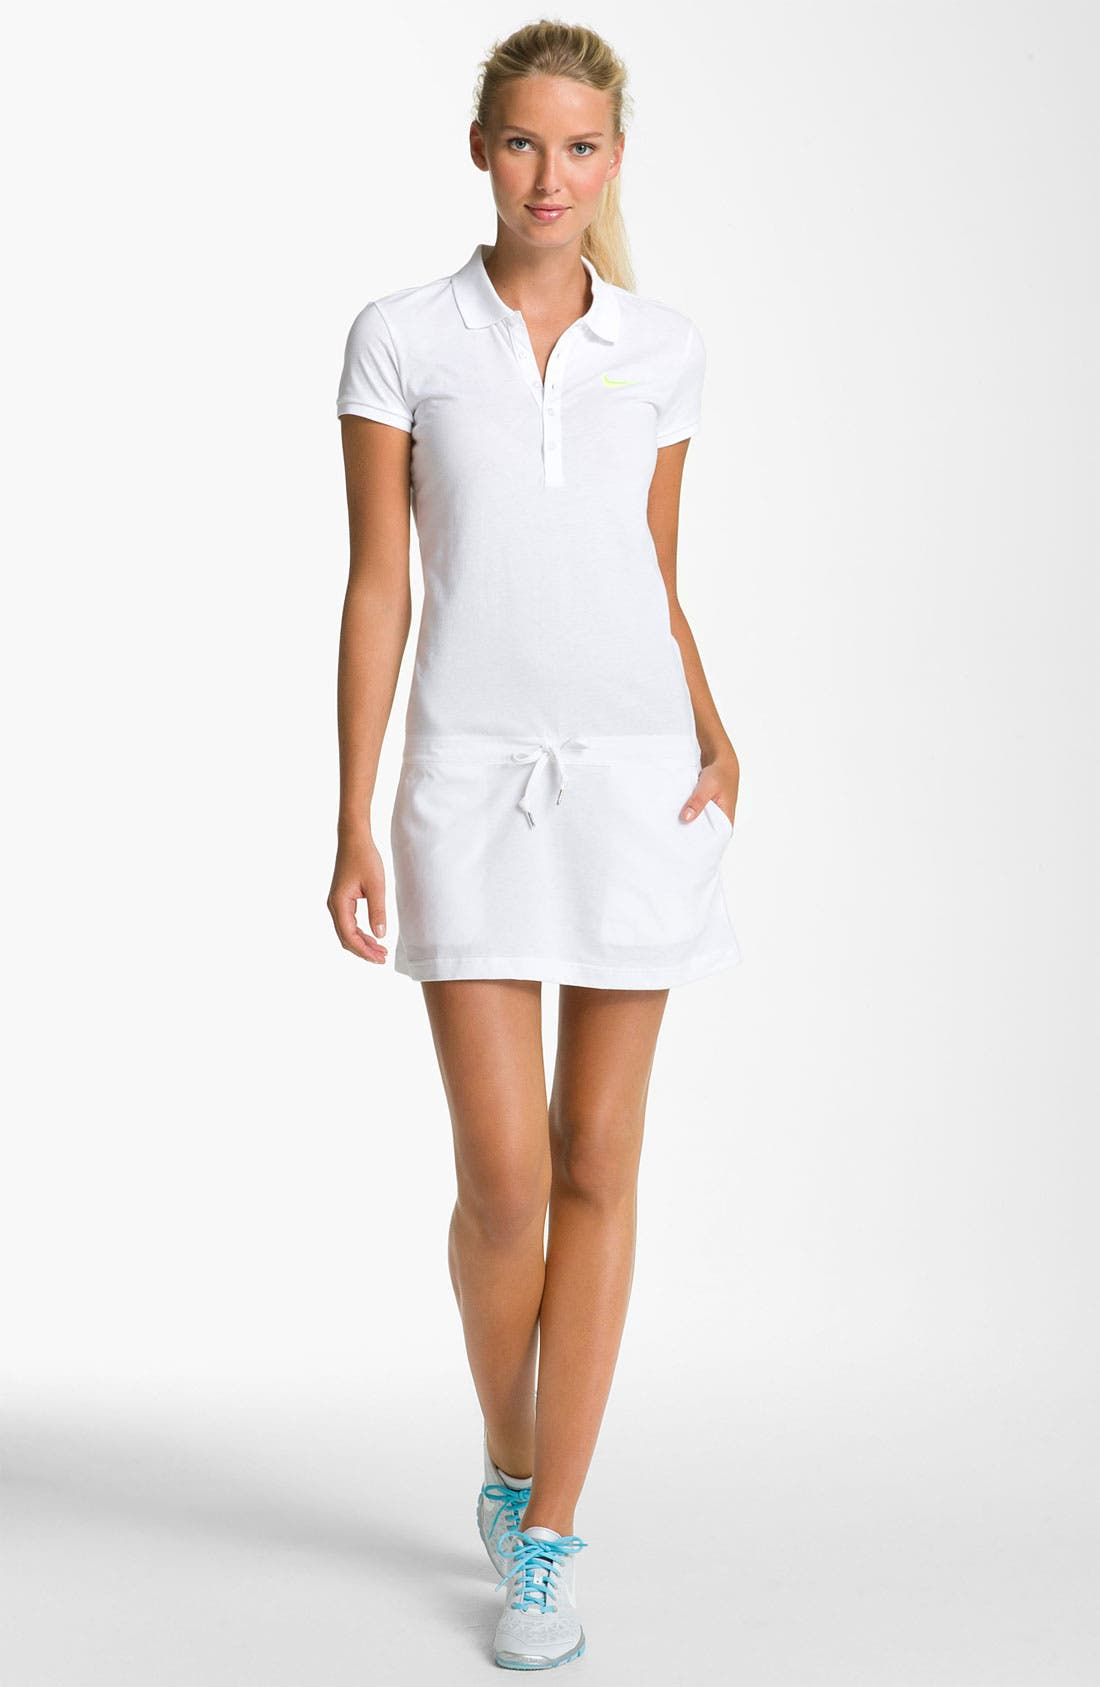 Main Image - Nike 'AD' Polo Dress